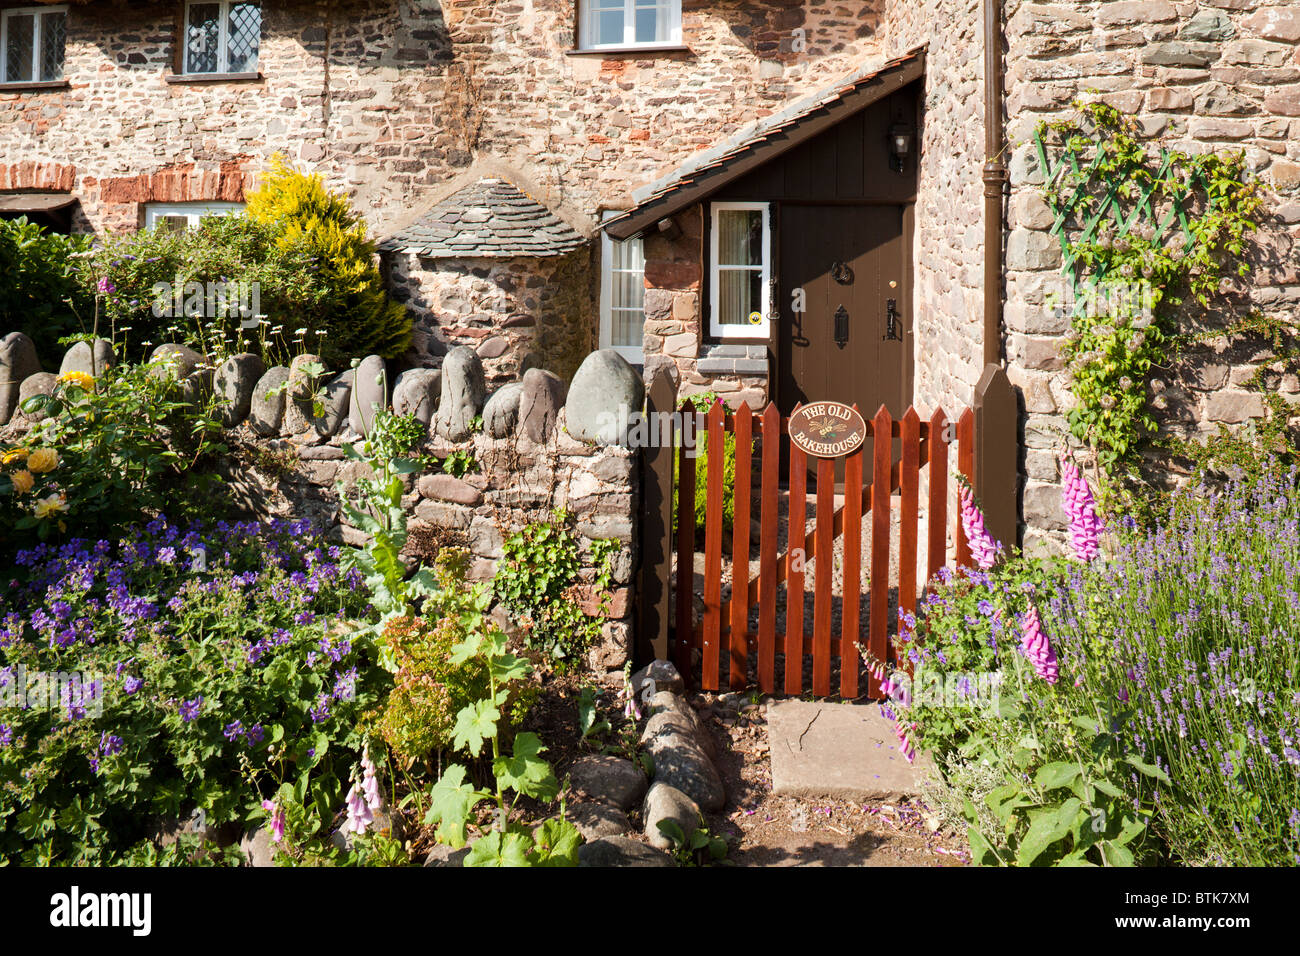 The Old Bakehouse in the Exmoor village of Bossington, Somerset - Stock Image